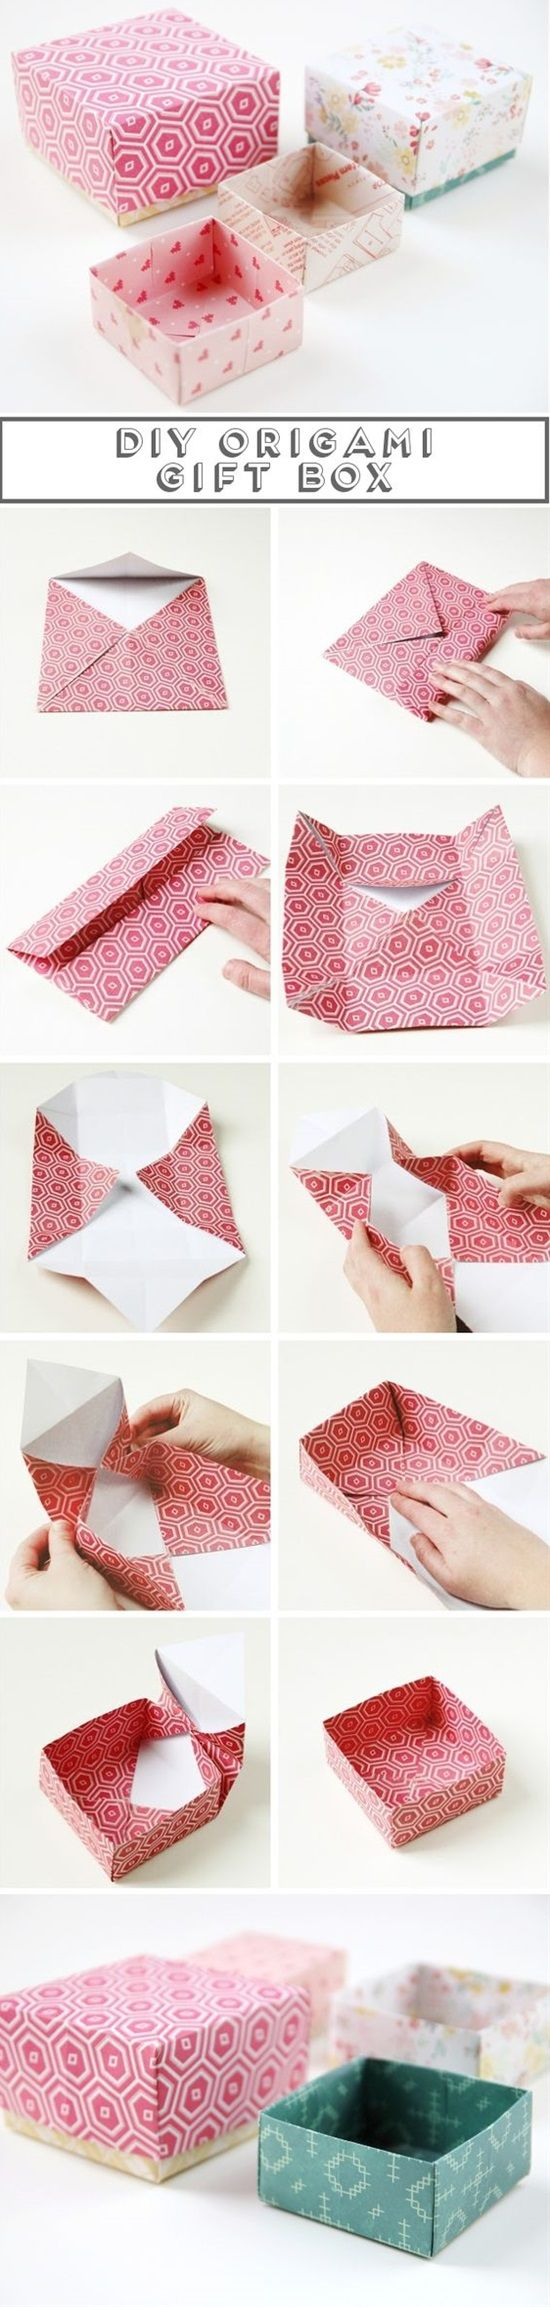 15 Easy Origami Tutorials For Anyone To Follow                                                                                                                                                                                 Mais                                                                                                                                                                                 More